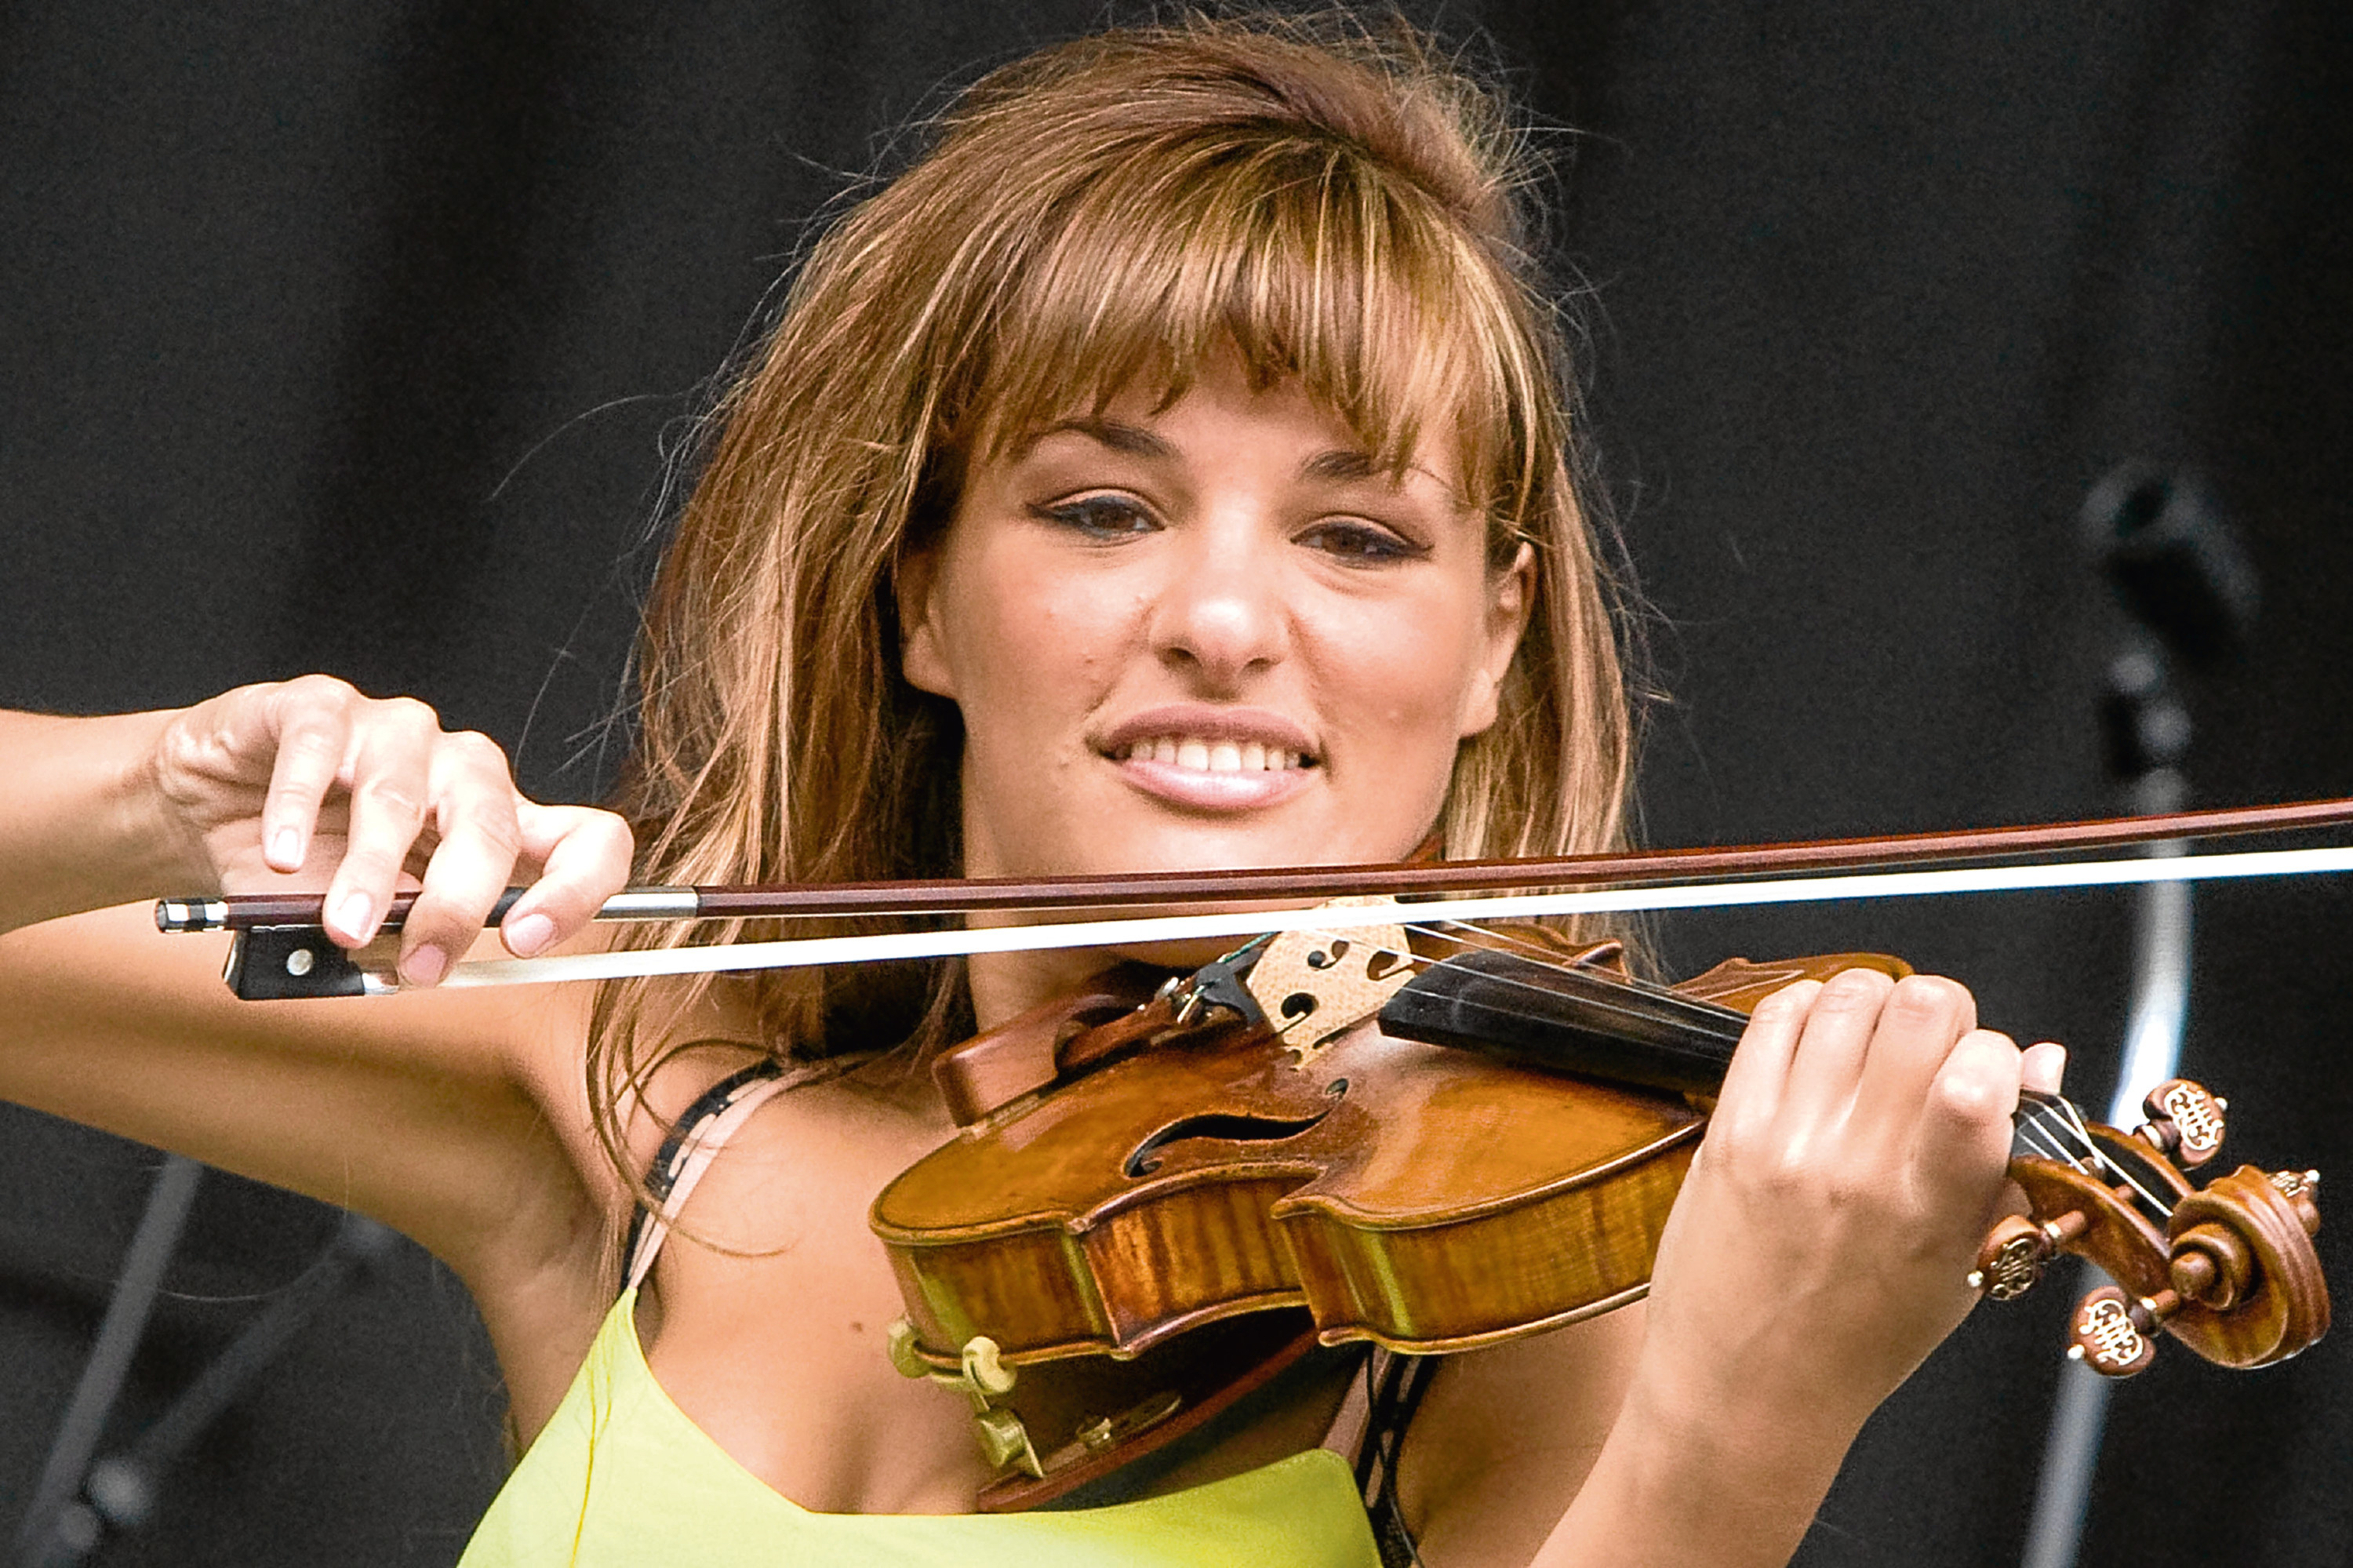 Nicola Benedetti was one of the artists due to perform at this year's festival